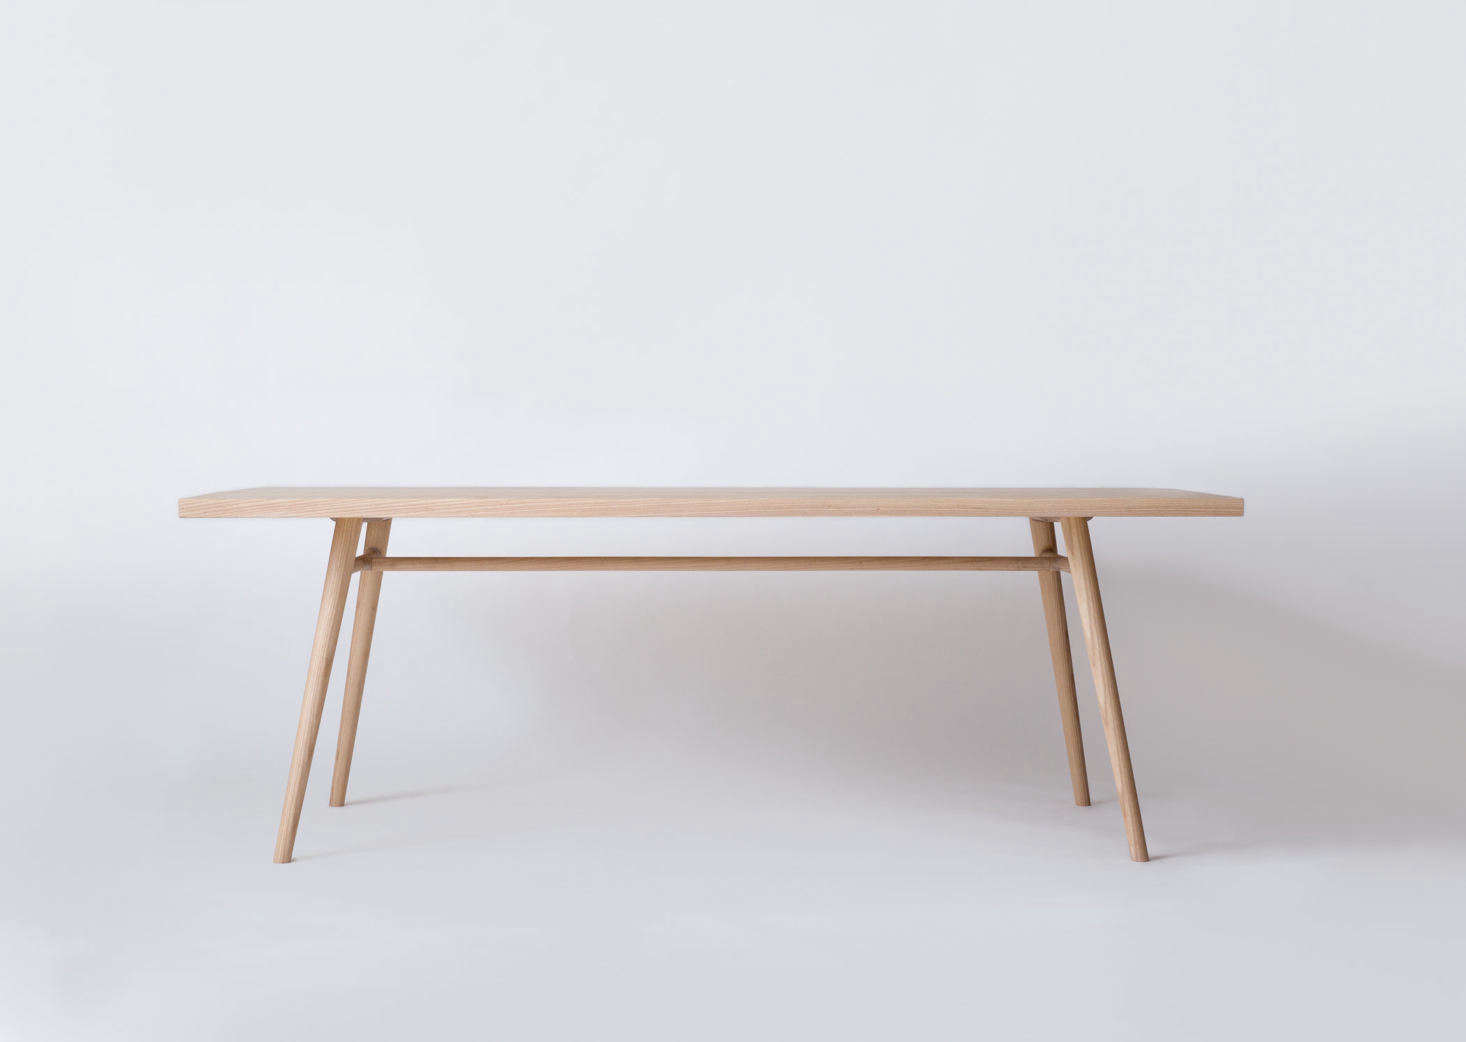 The anchor of the collection, the Bough Table, expresses a simplicity found both in Shaker and Sashimono furniture, two craftsmanship styles that inspire Simmering and Pauewn's work; starting at $5,800.